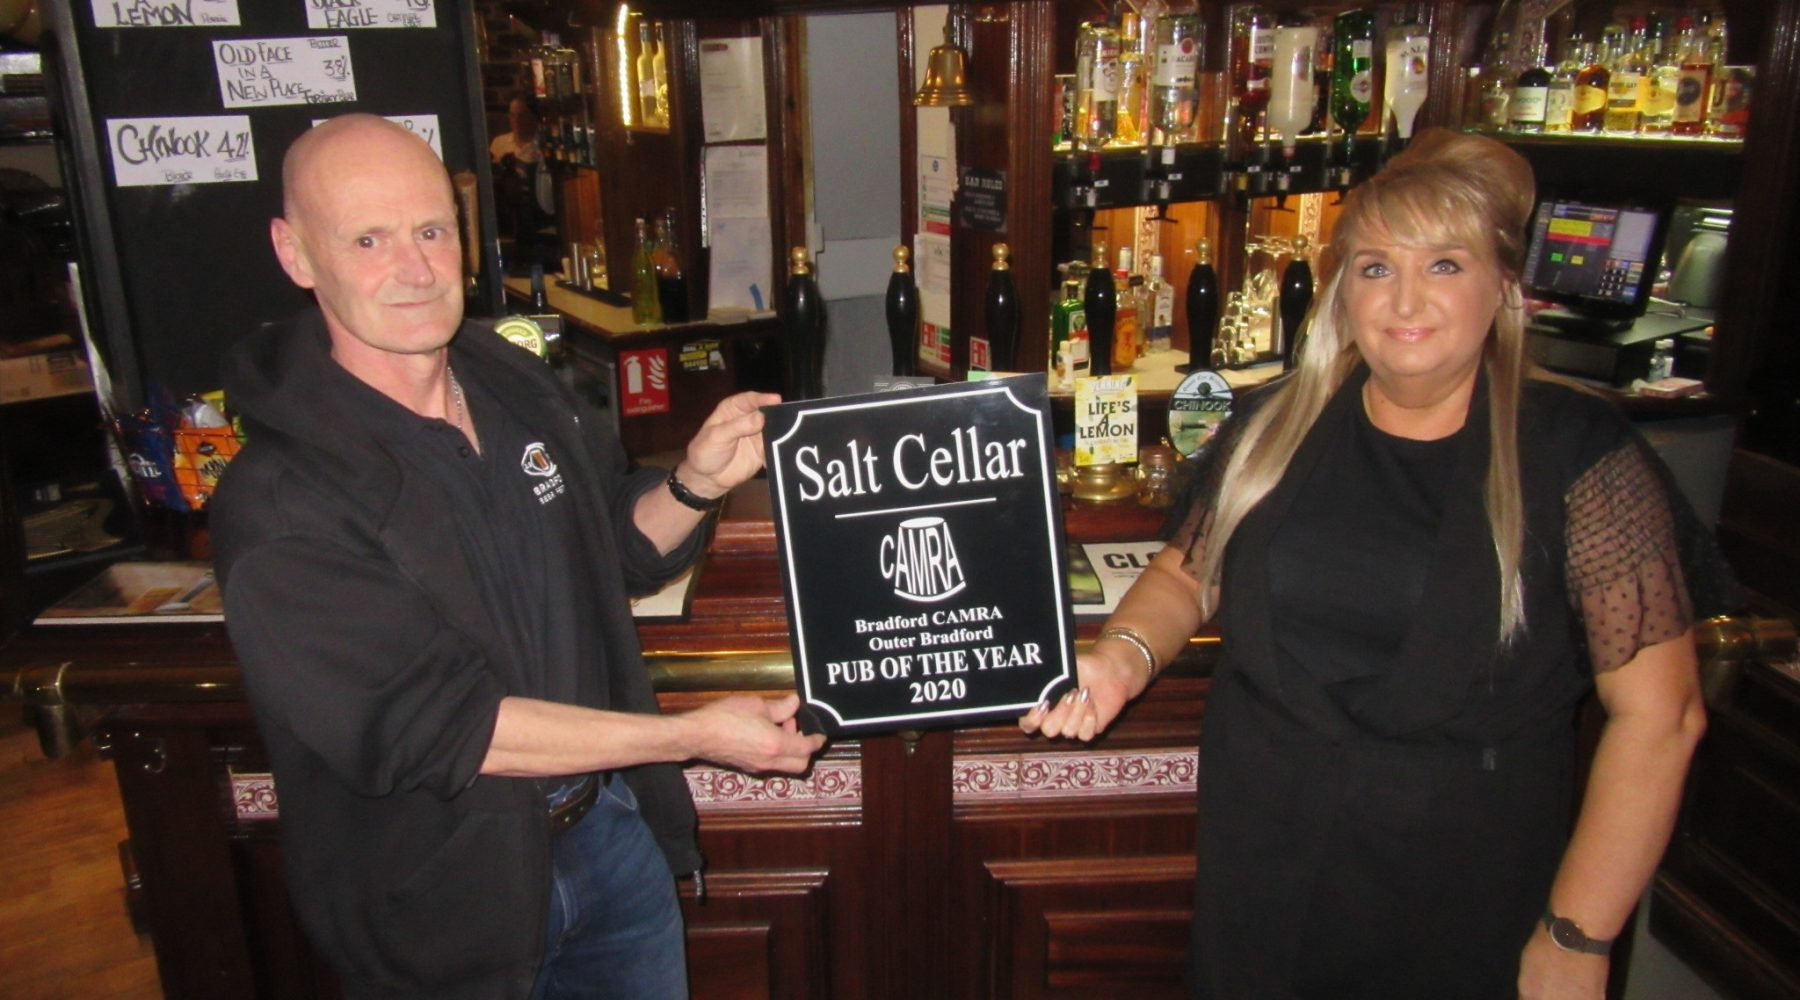 Bradford pubs and clubs receive CAMRA accolades